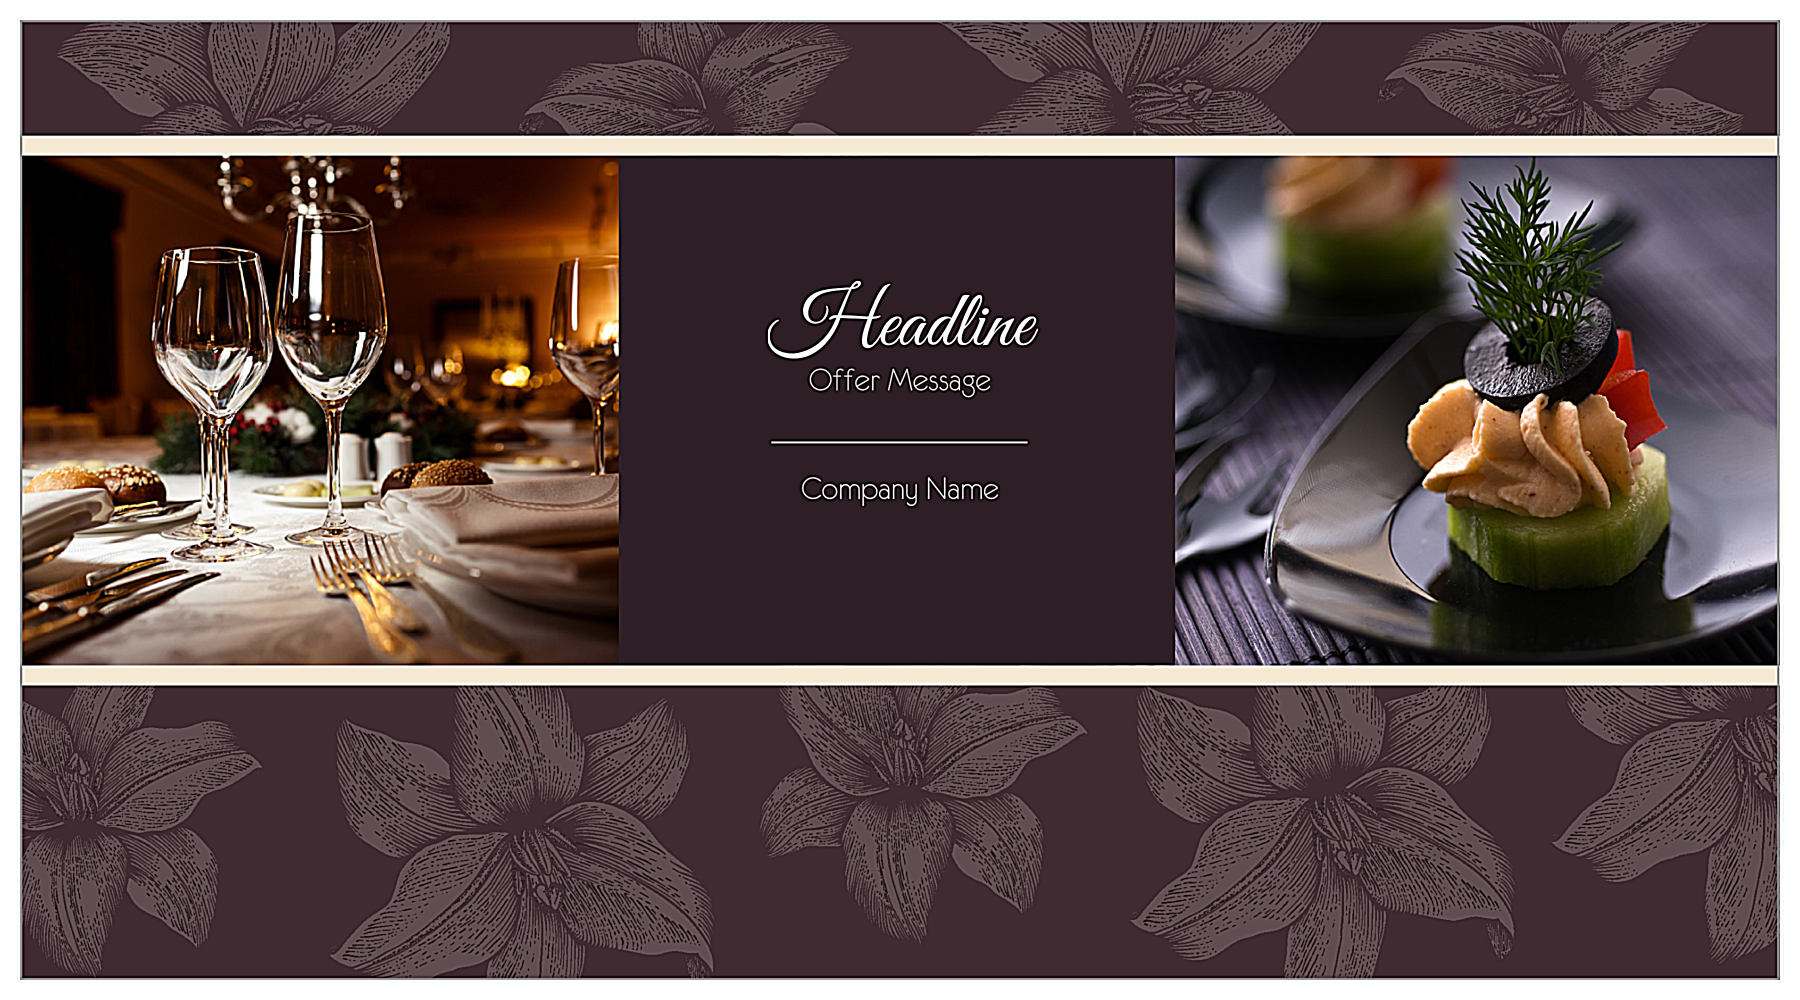 Customize Our Wining and Dining Postcard Design Template front - Postcards Maker